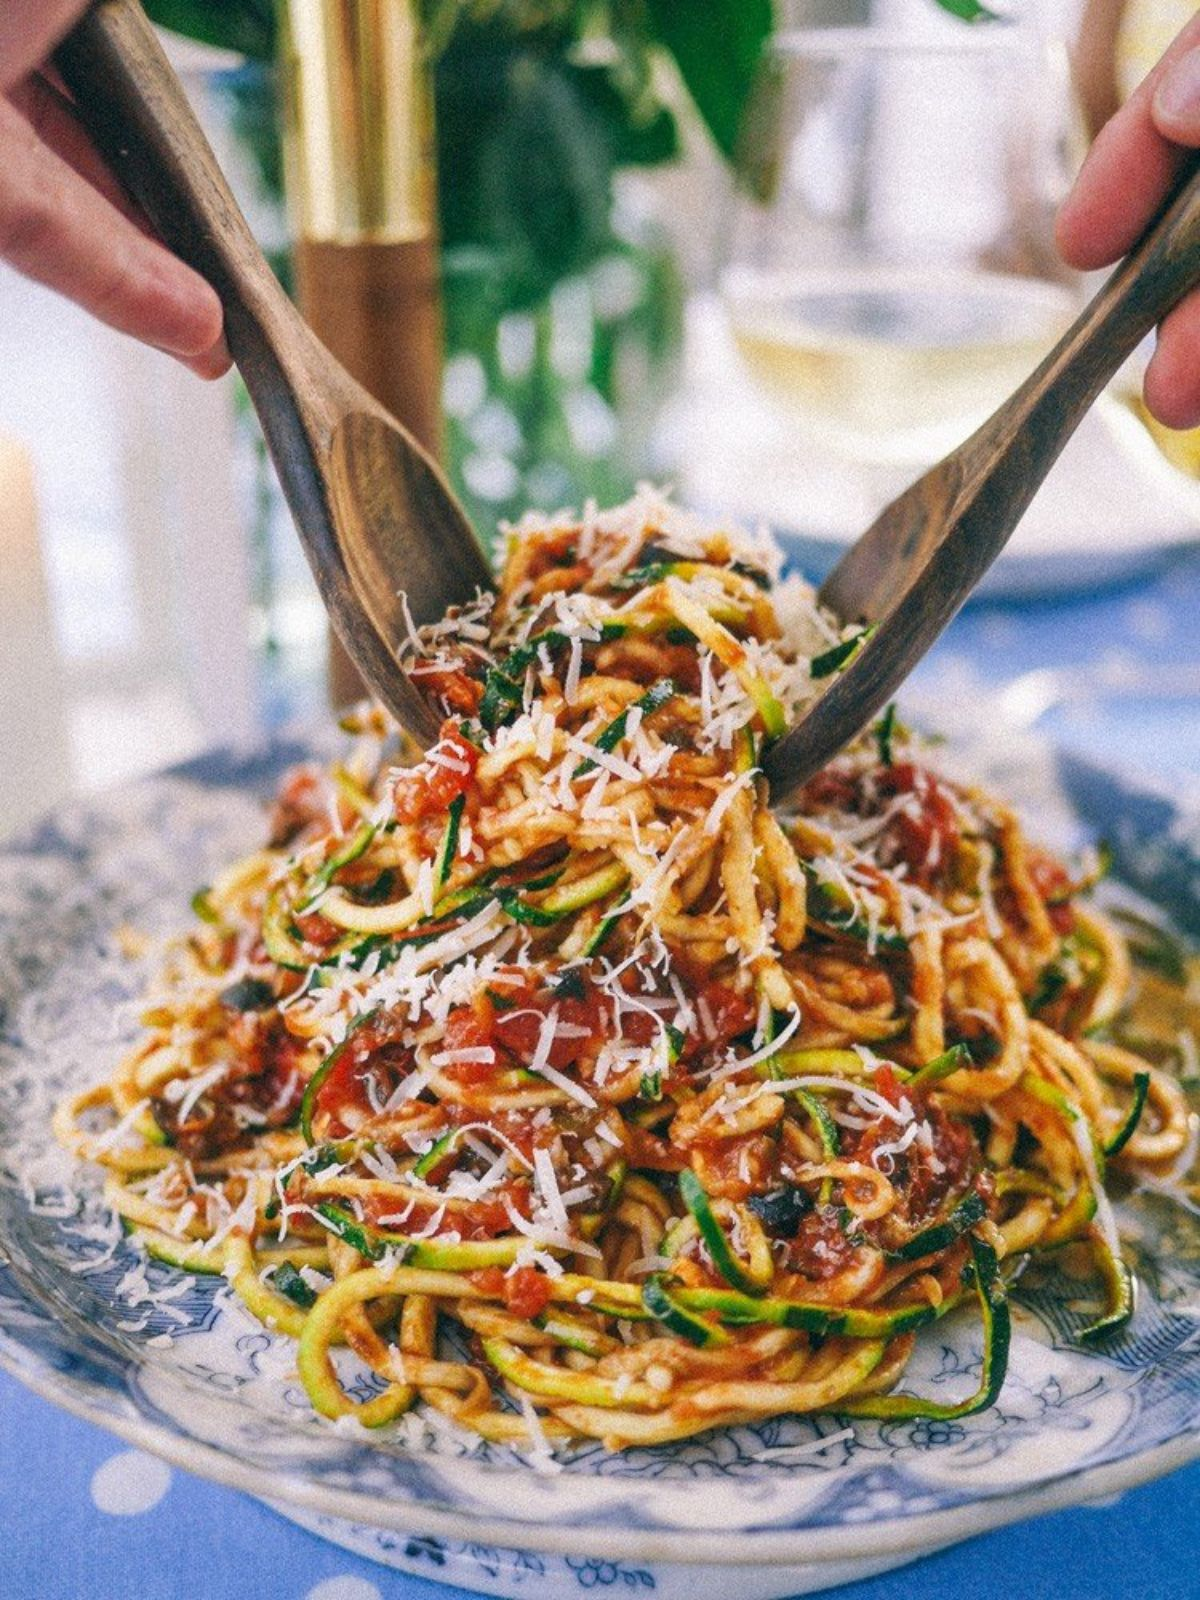 on a light blue tablecloth with white spots is a delft style dish. On top of it is some spiralized courgette covered in tomato sauce and parmesan cheese. Two wooden serving spoons are being hed by two hands digging in to the pasta